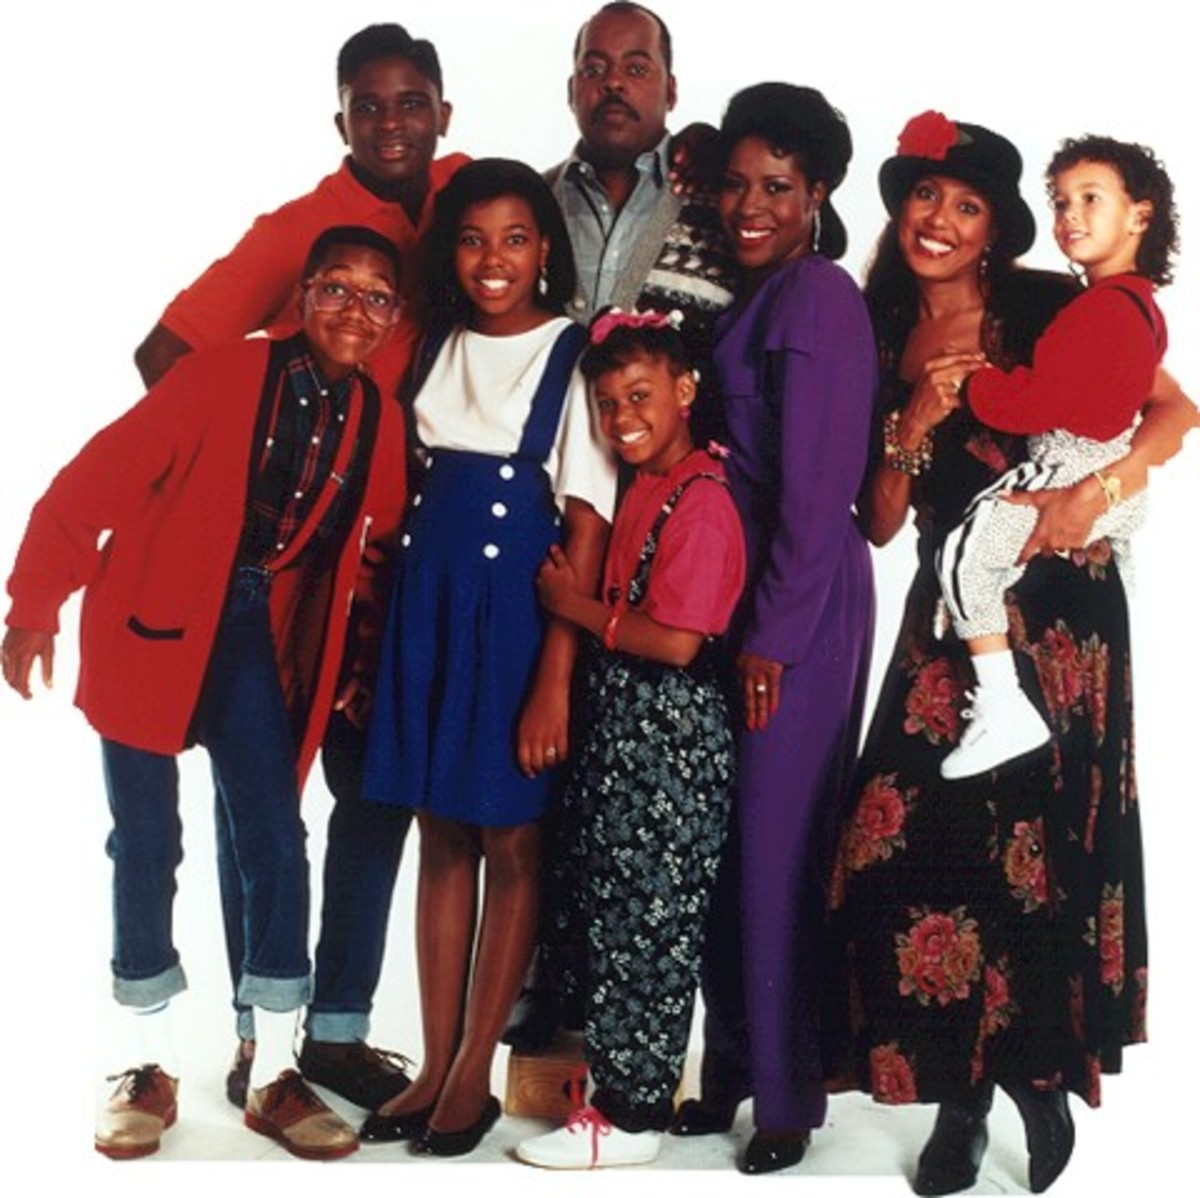 Family Matters - Where Are They Now?